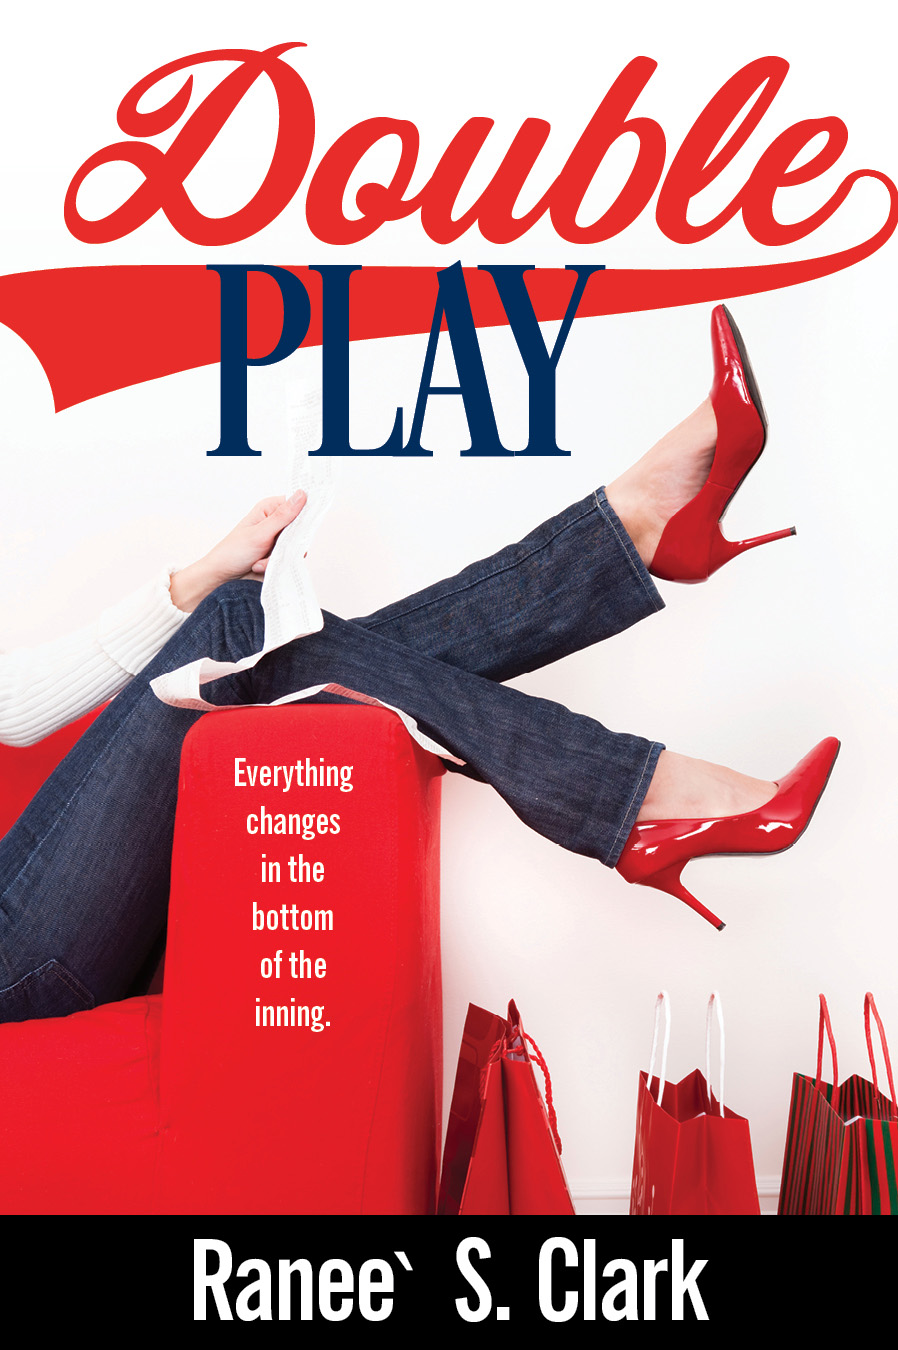 Double Play book cover: the legs of a woman propped up on a red couch, wearing red heels, and red shopping bags on the floor next to the couch